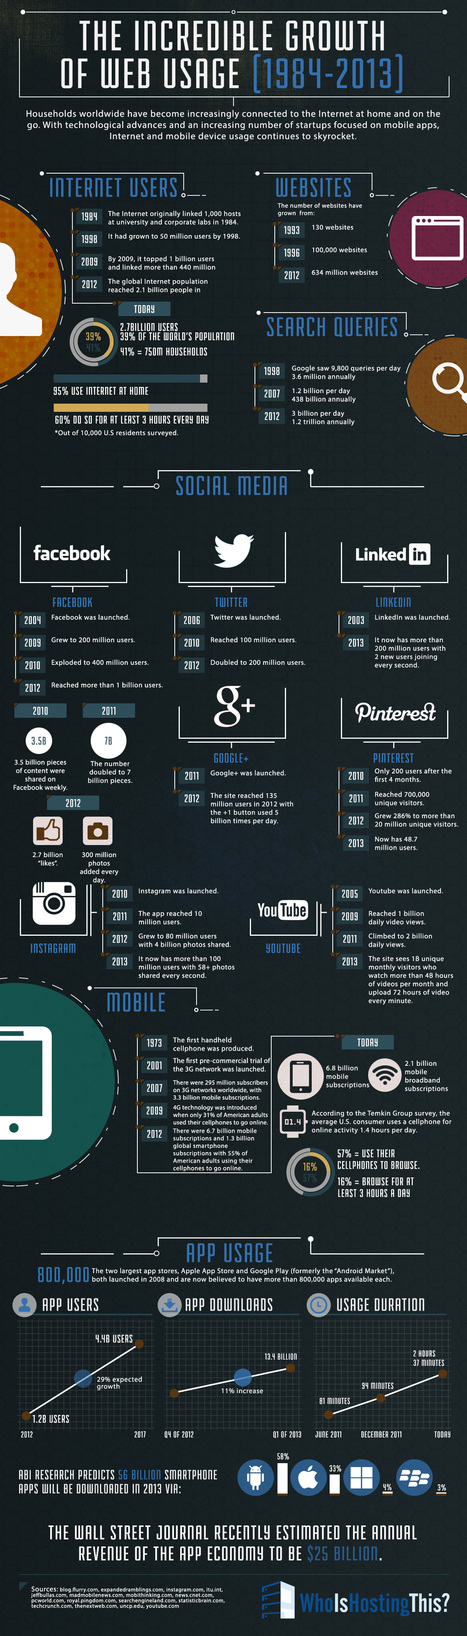 Infographic: The Incredible Growth of Web Usage [1984-2013] | Marketing coach2u | Scoop.it